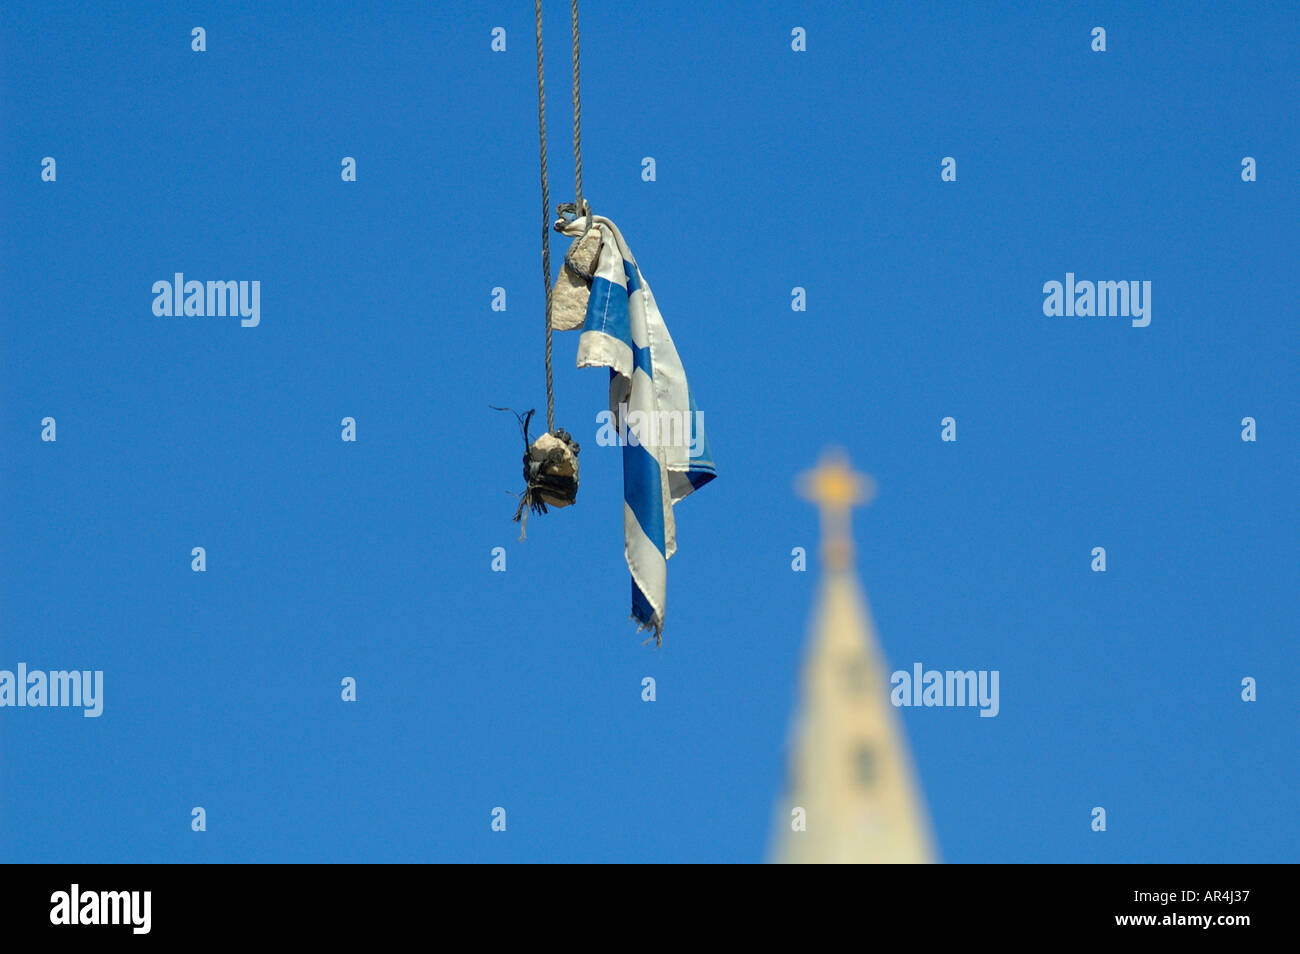 Israeli flag hanging off electric cable in East Jerusalem during Intifada riots, Israel - Stock Image